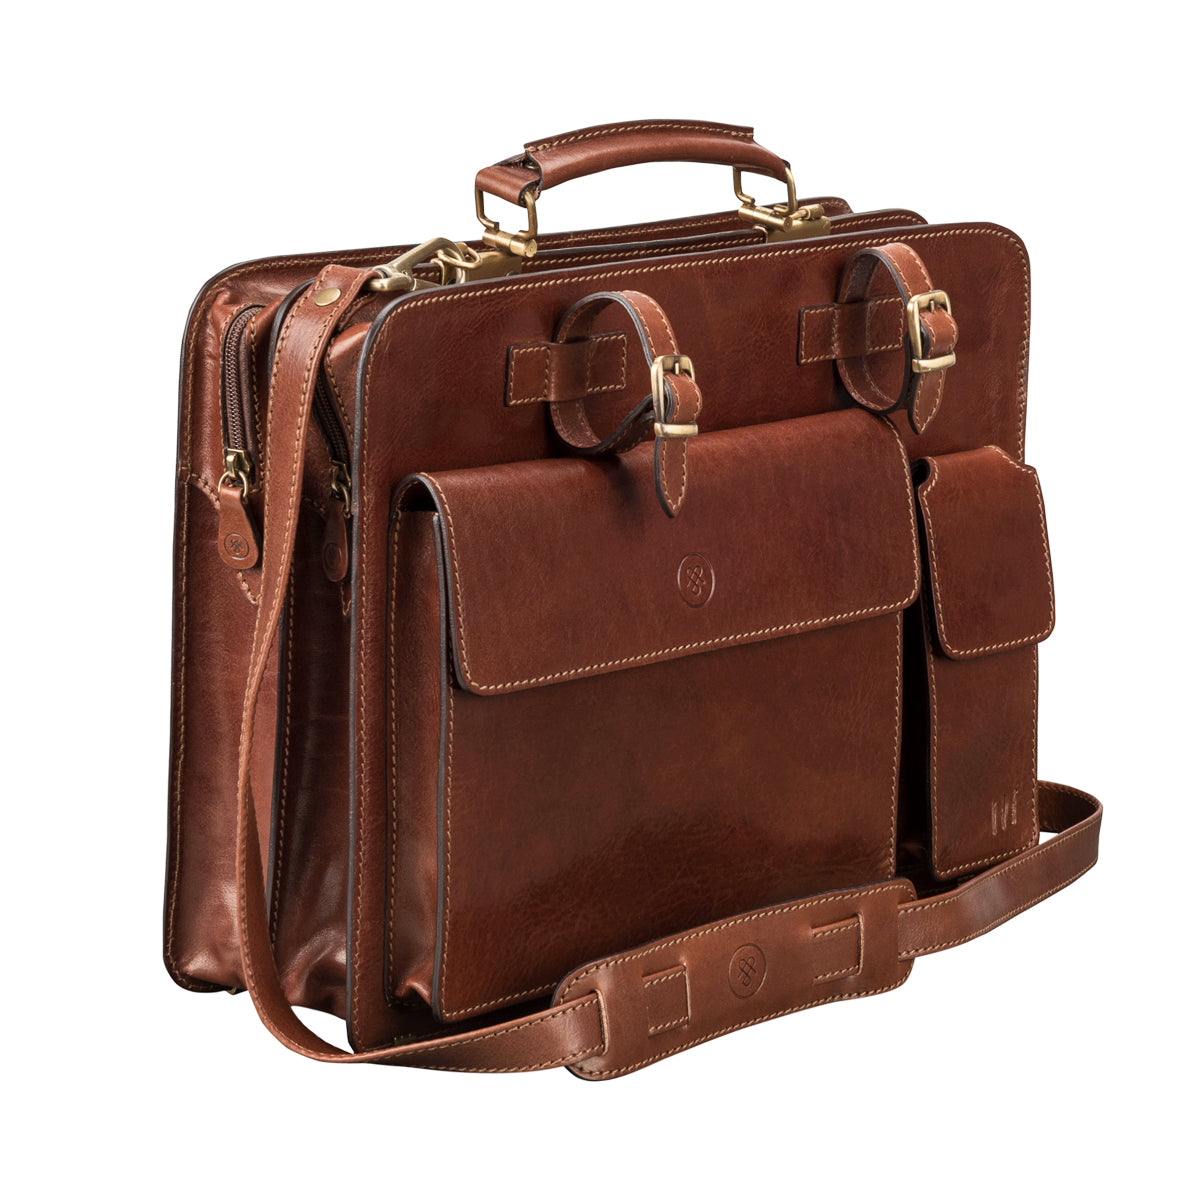 Image 2 of the 'Alanzo' Chestnut Veg-Tanned Leather Briefcase